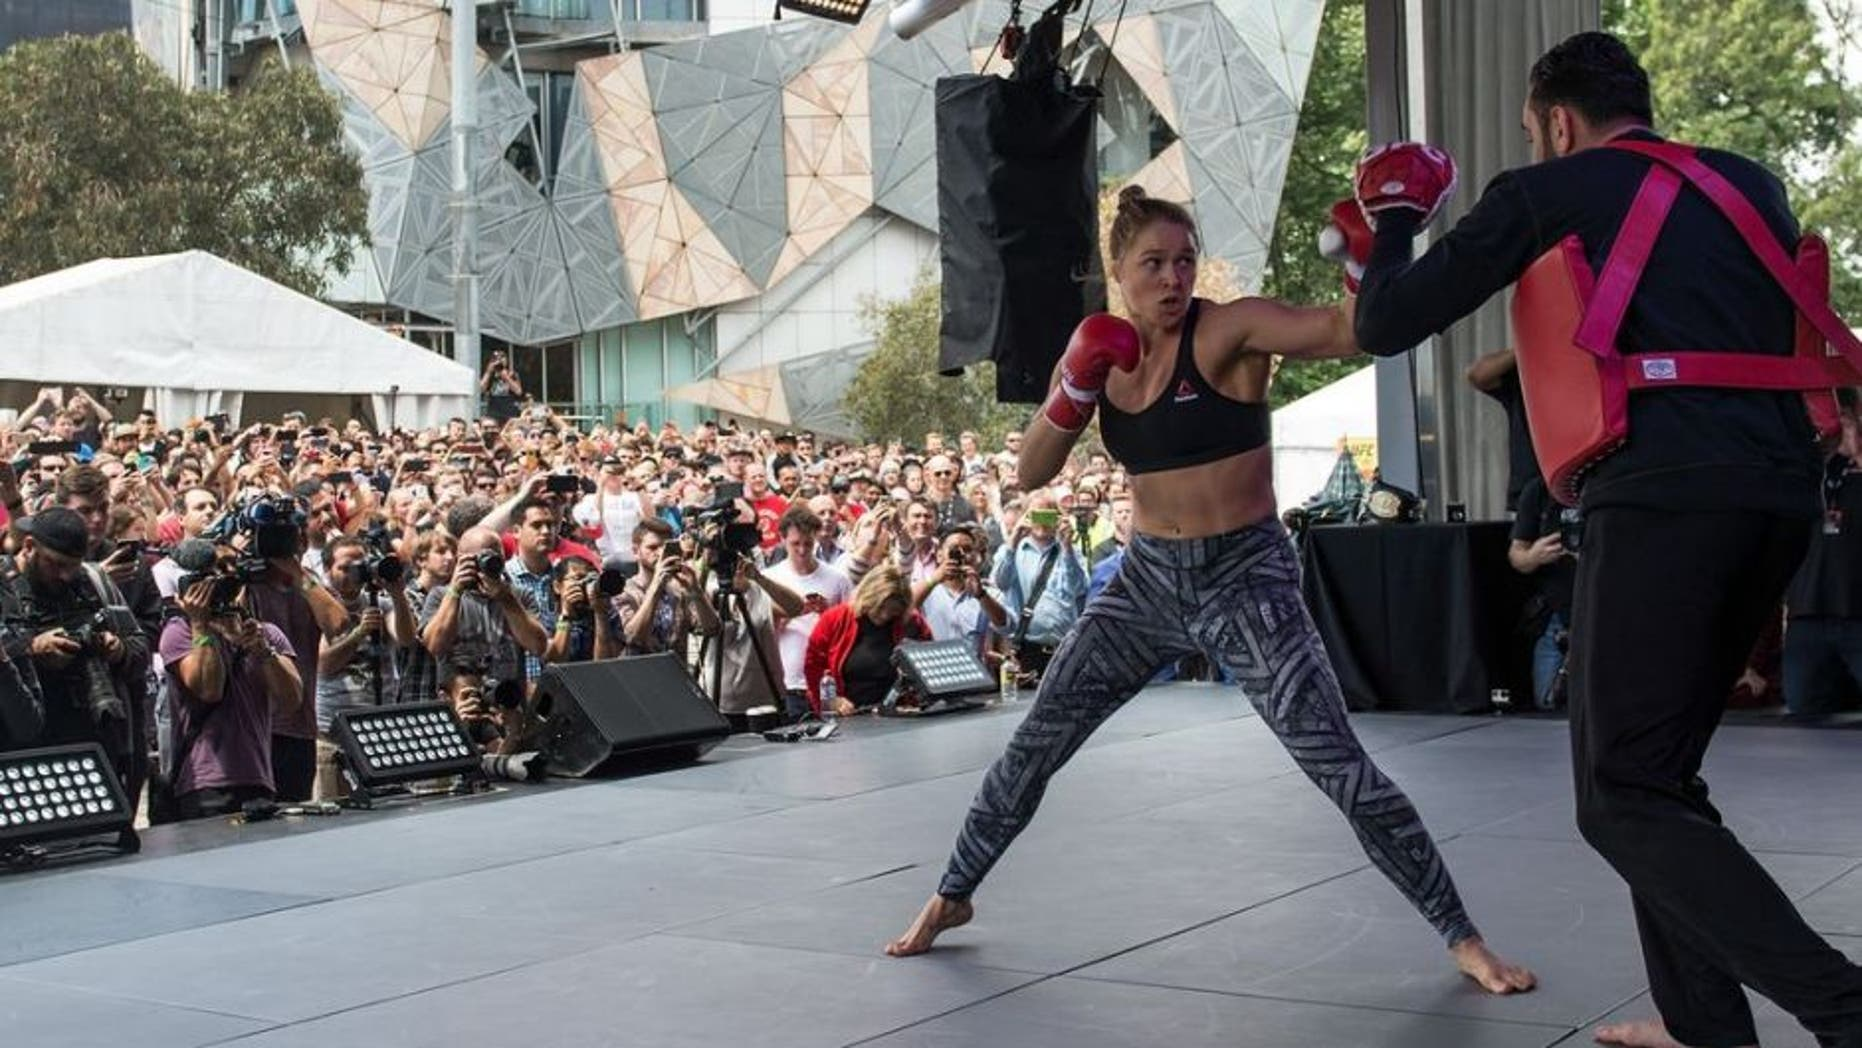 MELBOURNE, AUSTRALIA - NOVEMBER 12: UFC women's bantamweight champion Ronda Rousey of the United States holds an open workout for fans and media at Federation Square on November 12, 2015 in Melbourne, Australia. (Photo by Brandon Magnus/Zuffa LLC/Zuffa LLC via Getty Images)